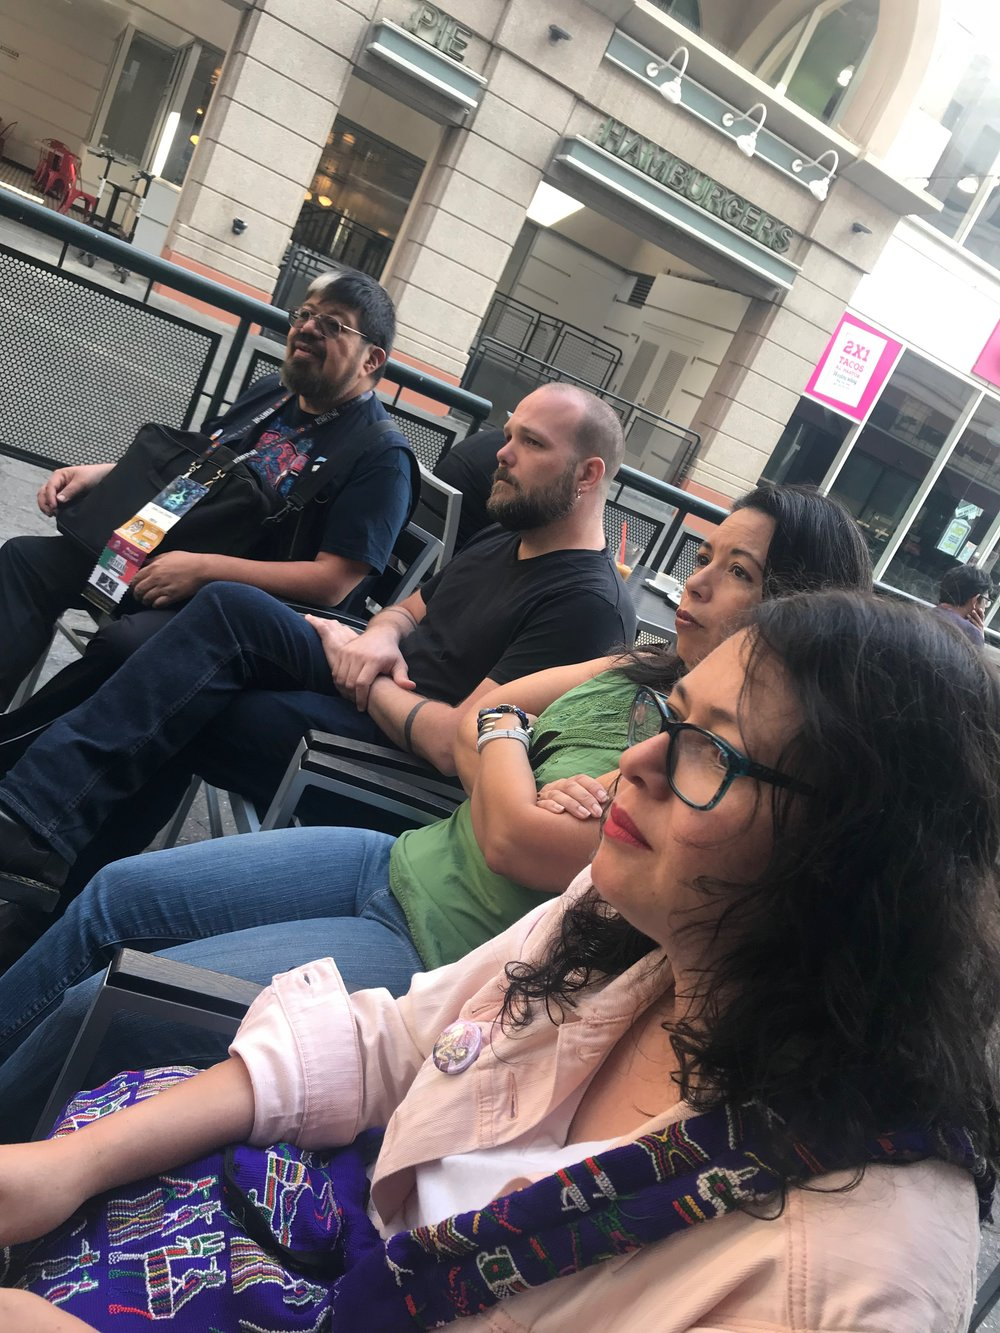 Libia Brenda, Felecia Caton Garcia, Pablo Defendini, and José Luis Zarate during coffee with the anthology Kickstarter backers